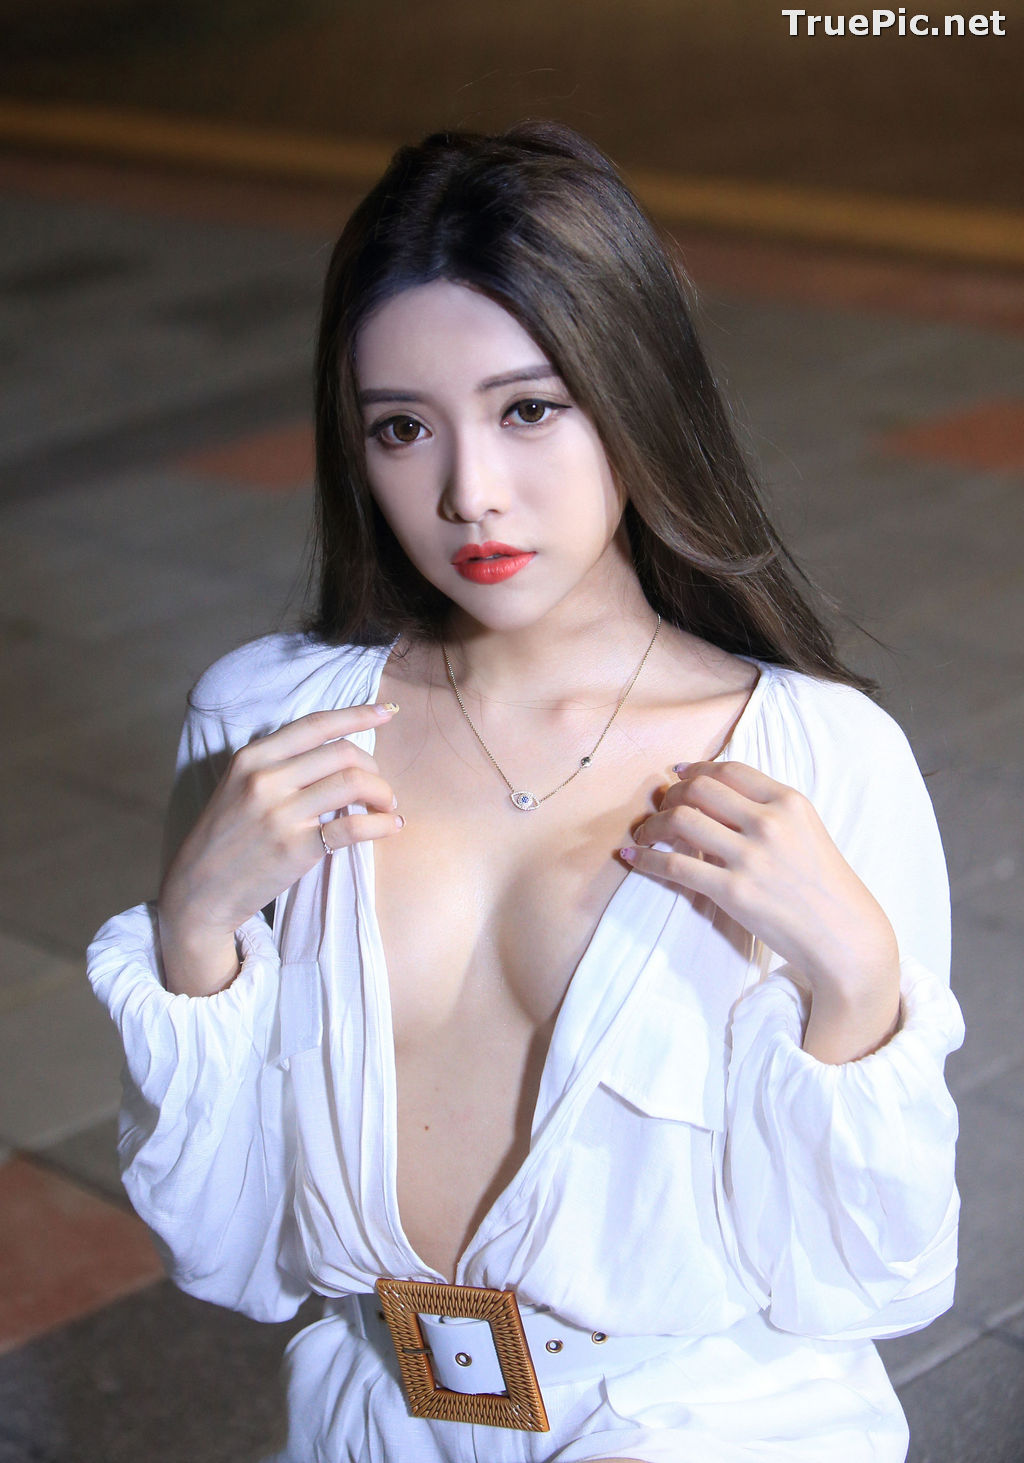 Image Taiwanese Model – 莊舒潔 (ViVi) – Sexy and Pure Baby In Night - TruePic.net - Picture-15